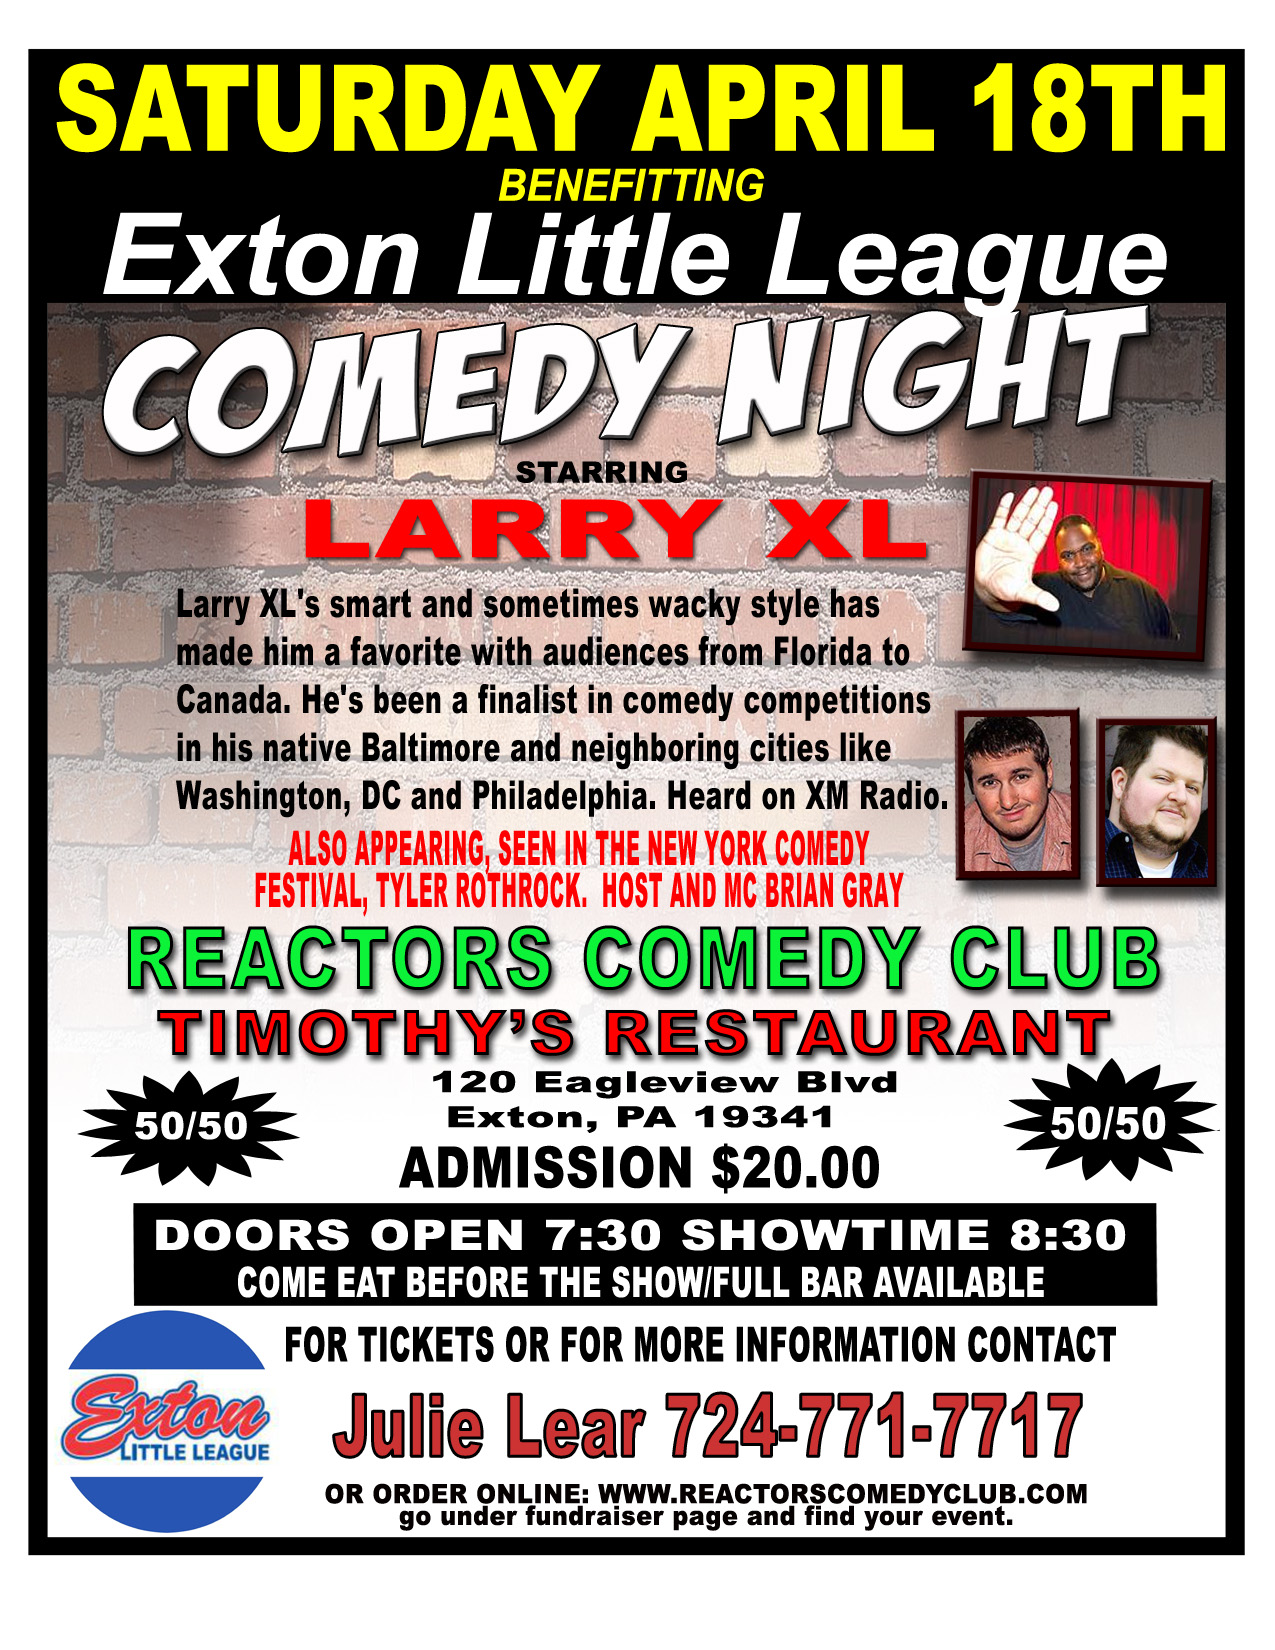 Exton Little League Comedy Night Flyer